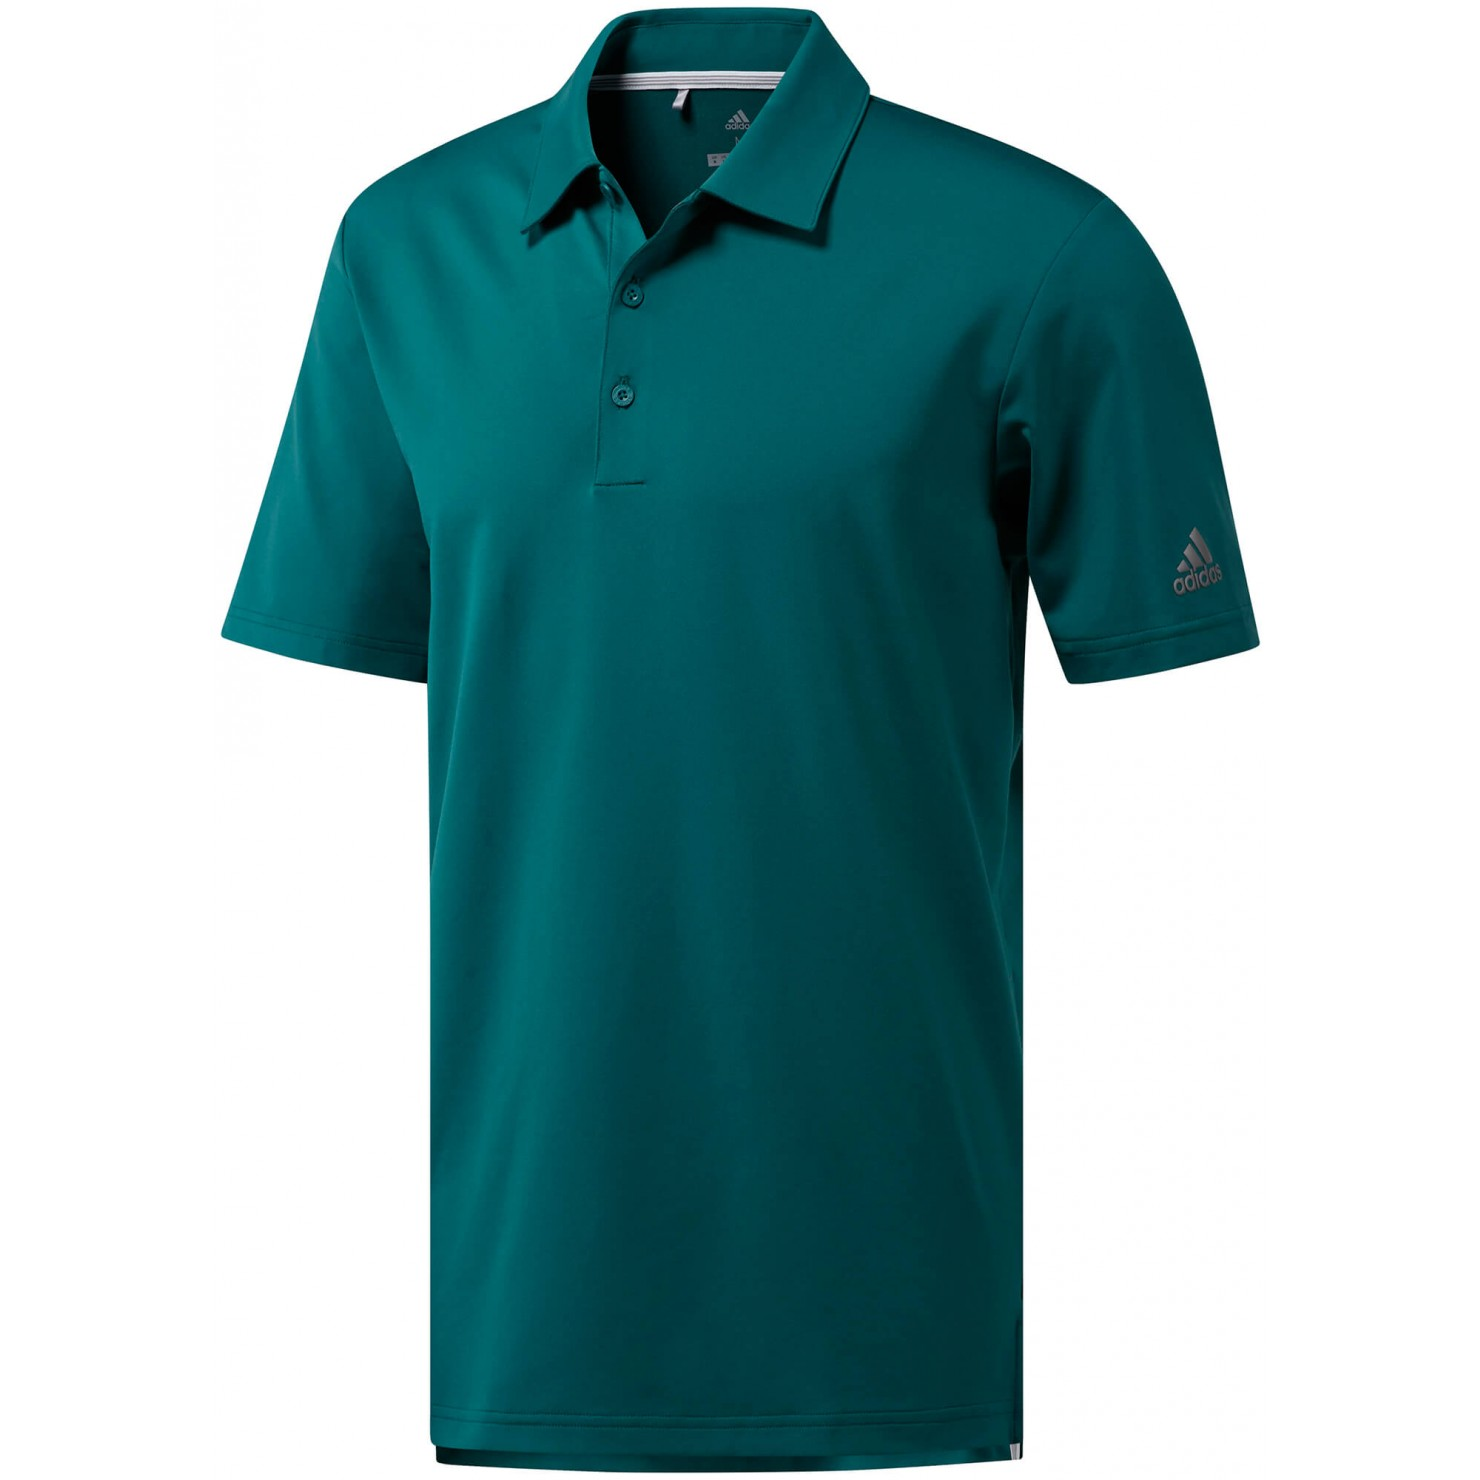 Adidas Men's Ultimate 365 Noble Green Solid Golf Polo